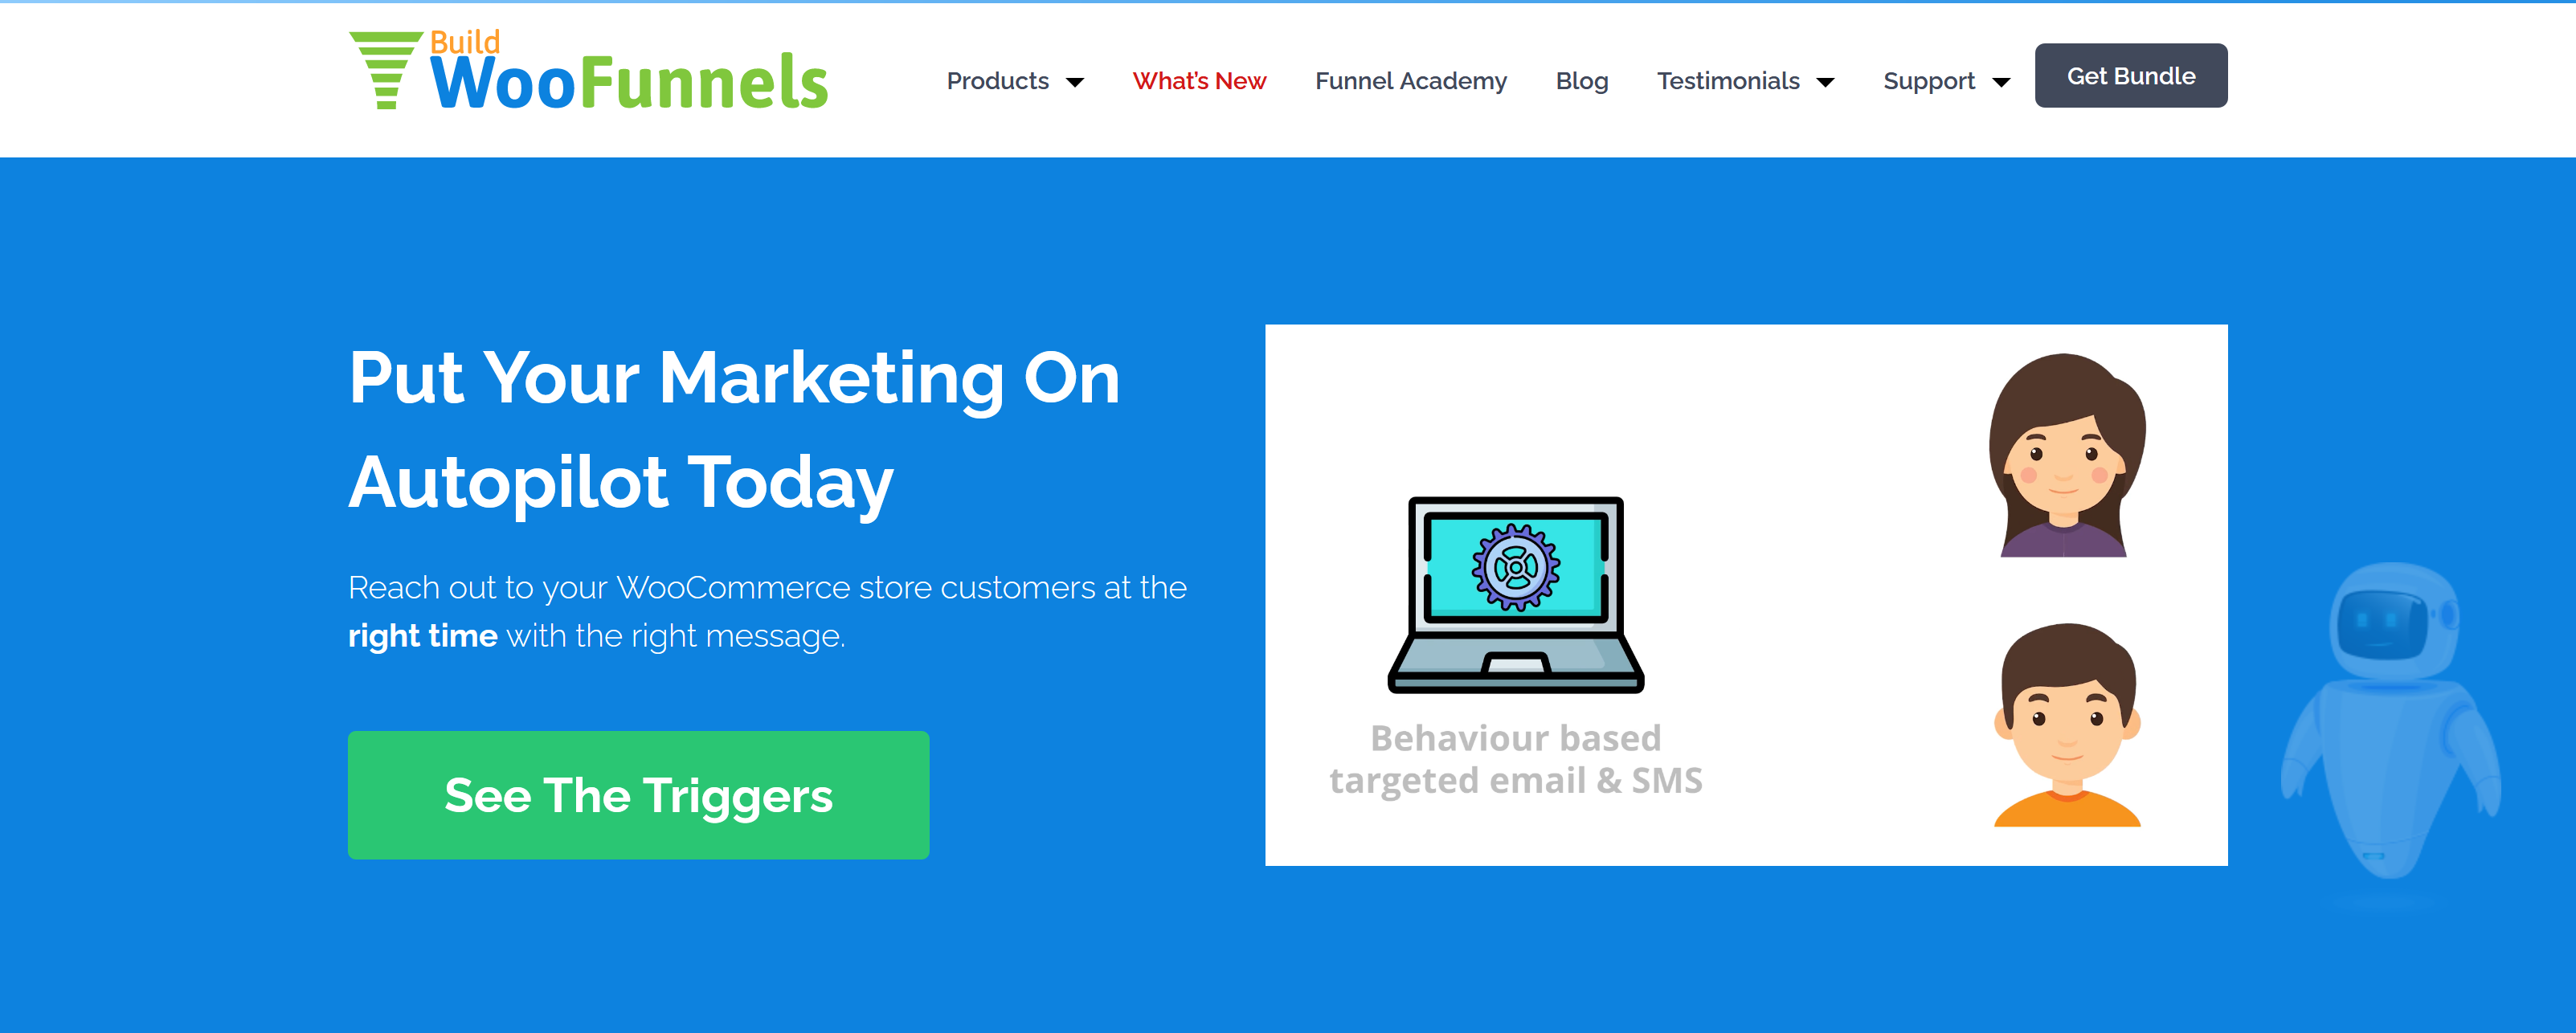 BuildWooFunnels Autonami Pro 1.2.2 (+ Addons) – Put Your Marketing On Autopilot Today